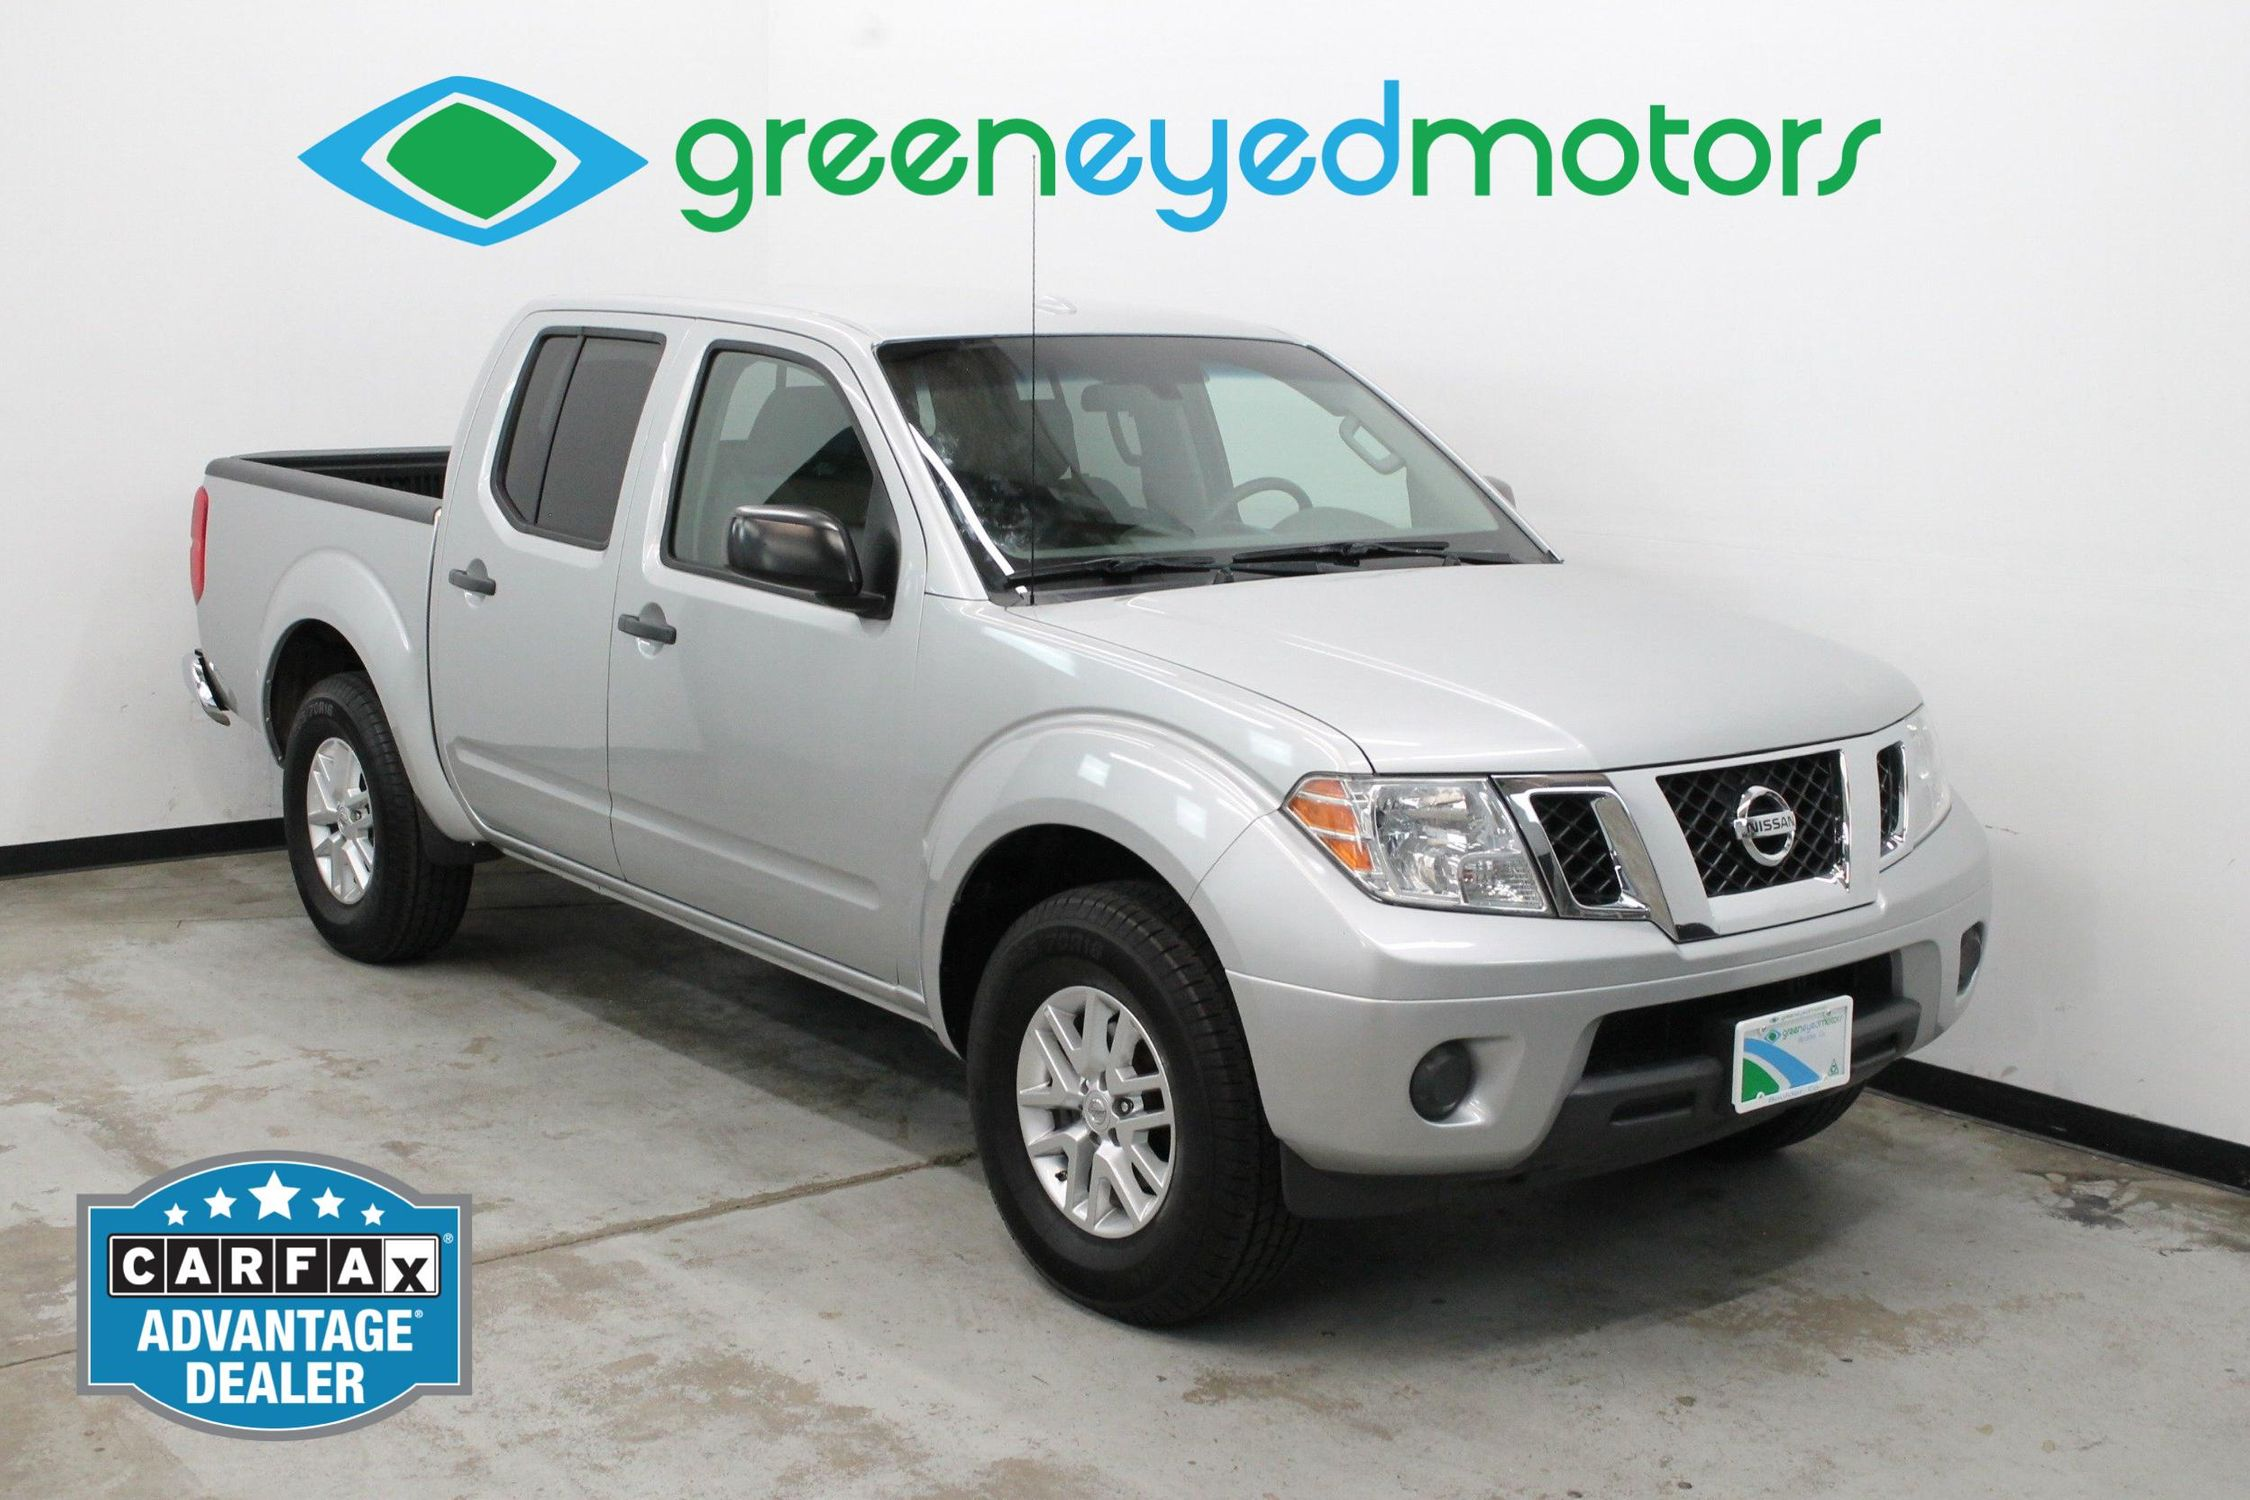 2014 Nissan Frontier Sv Green Eyed Motors 2013 Hitch Wiring